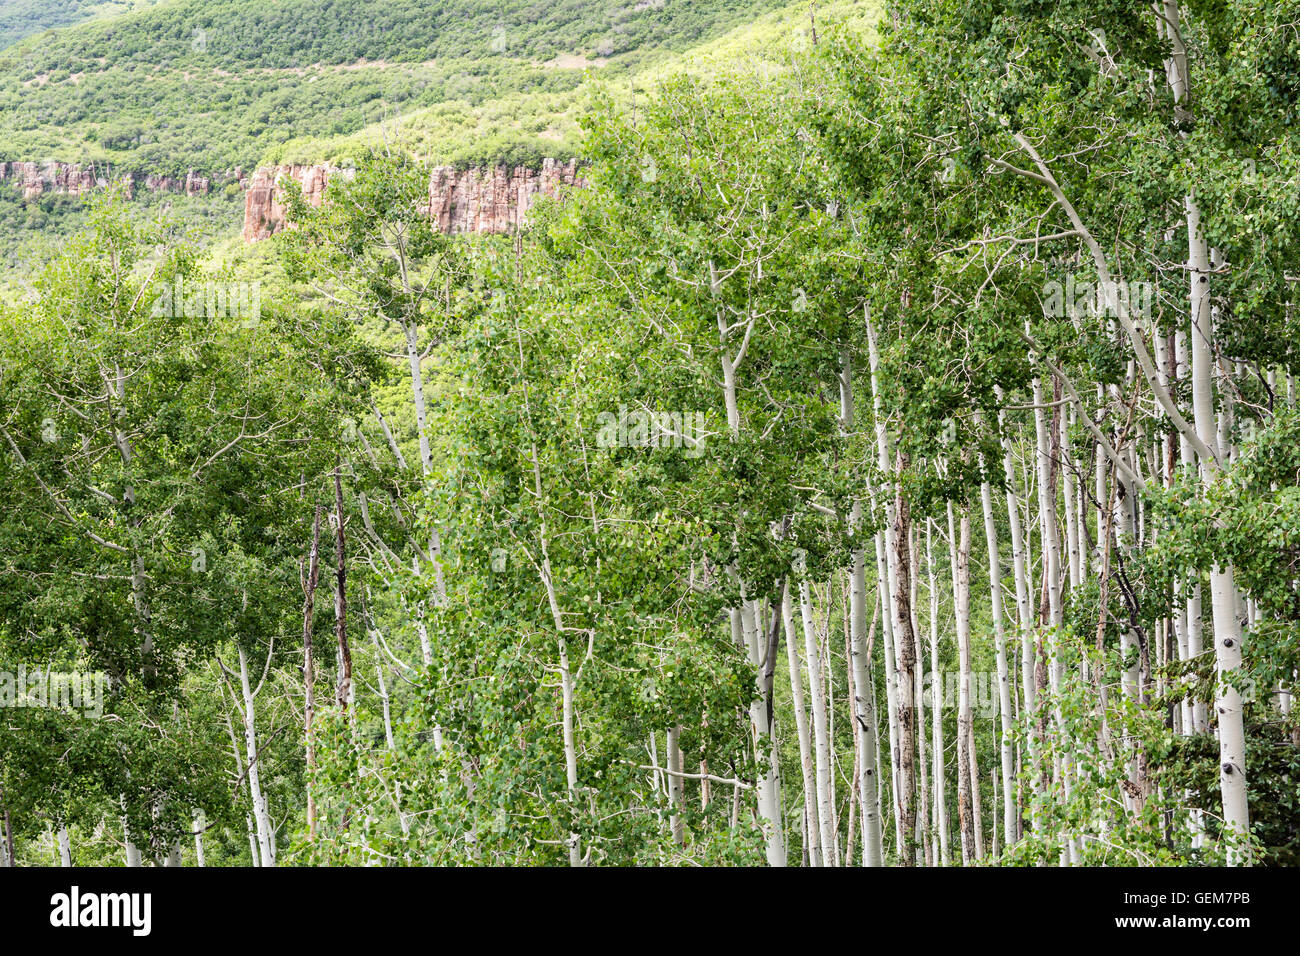 A stand of quaking aspen trees below a red rock cliff in the alpine La Sal Mountains of Utah - Stock Image